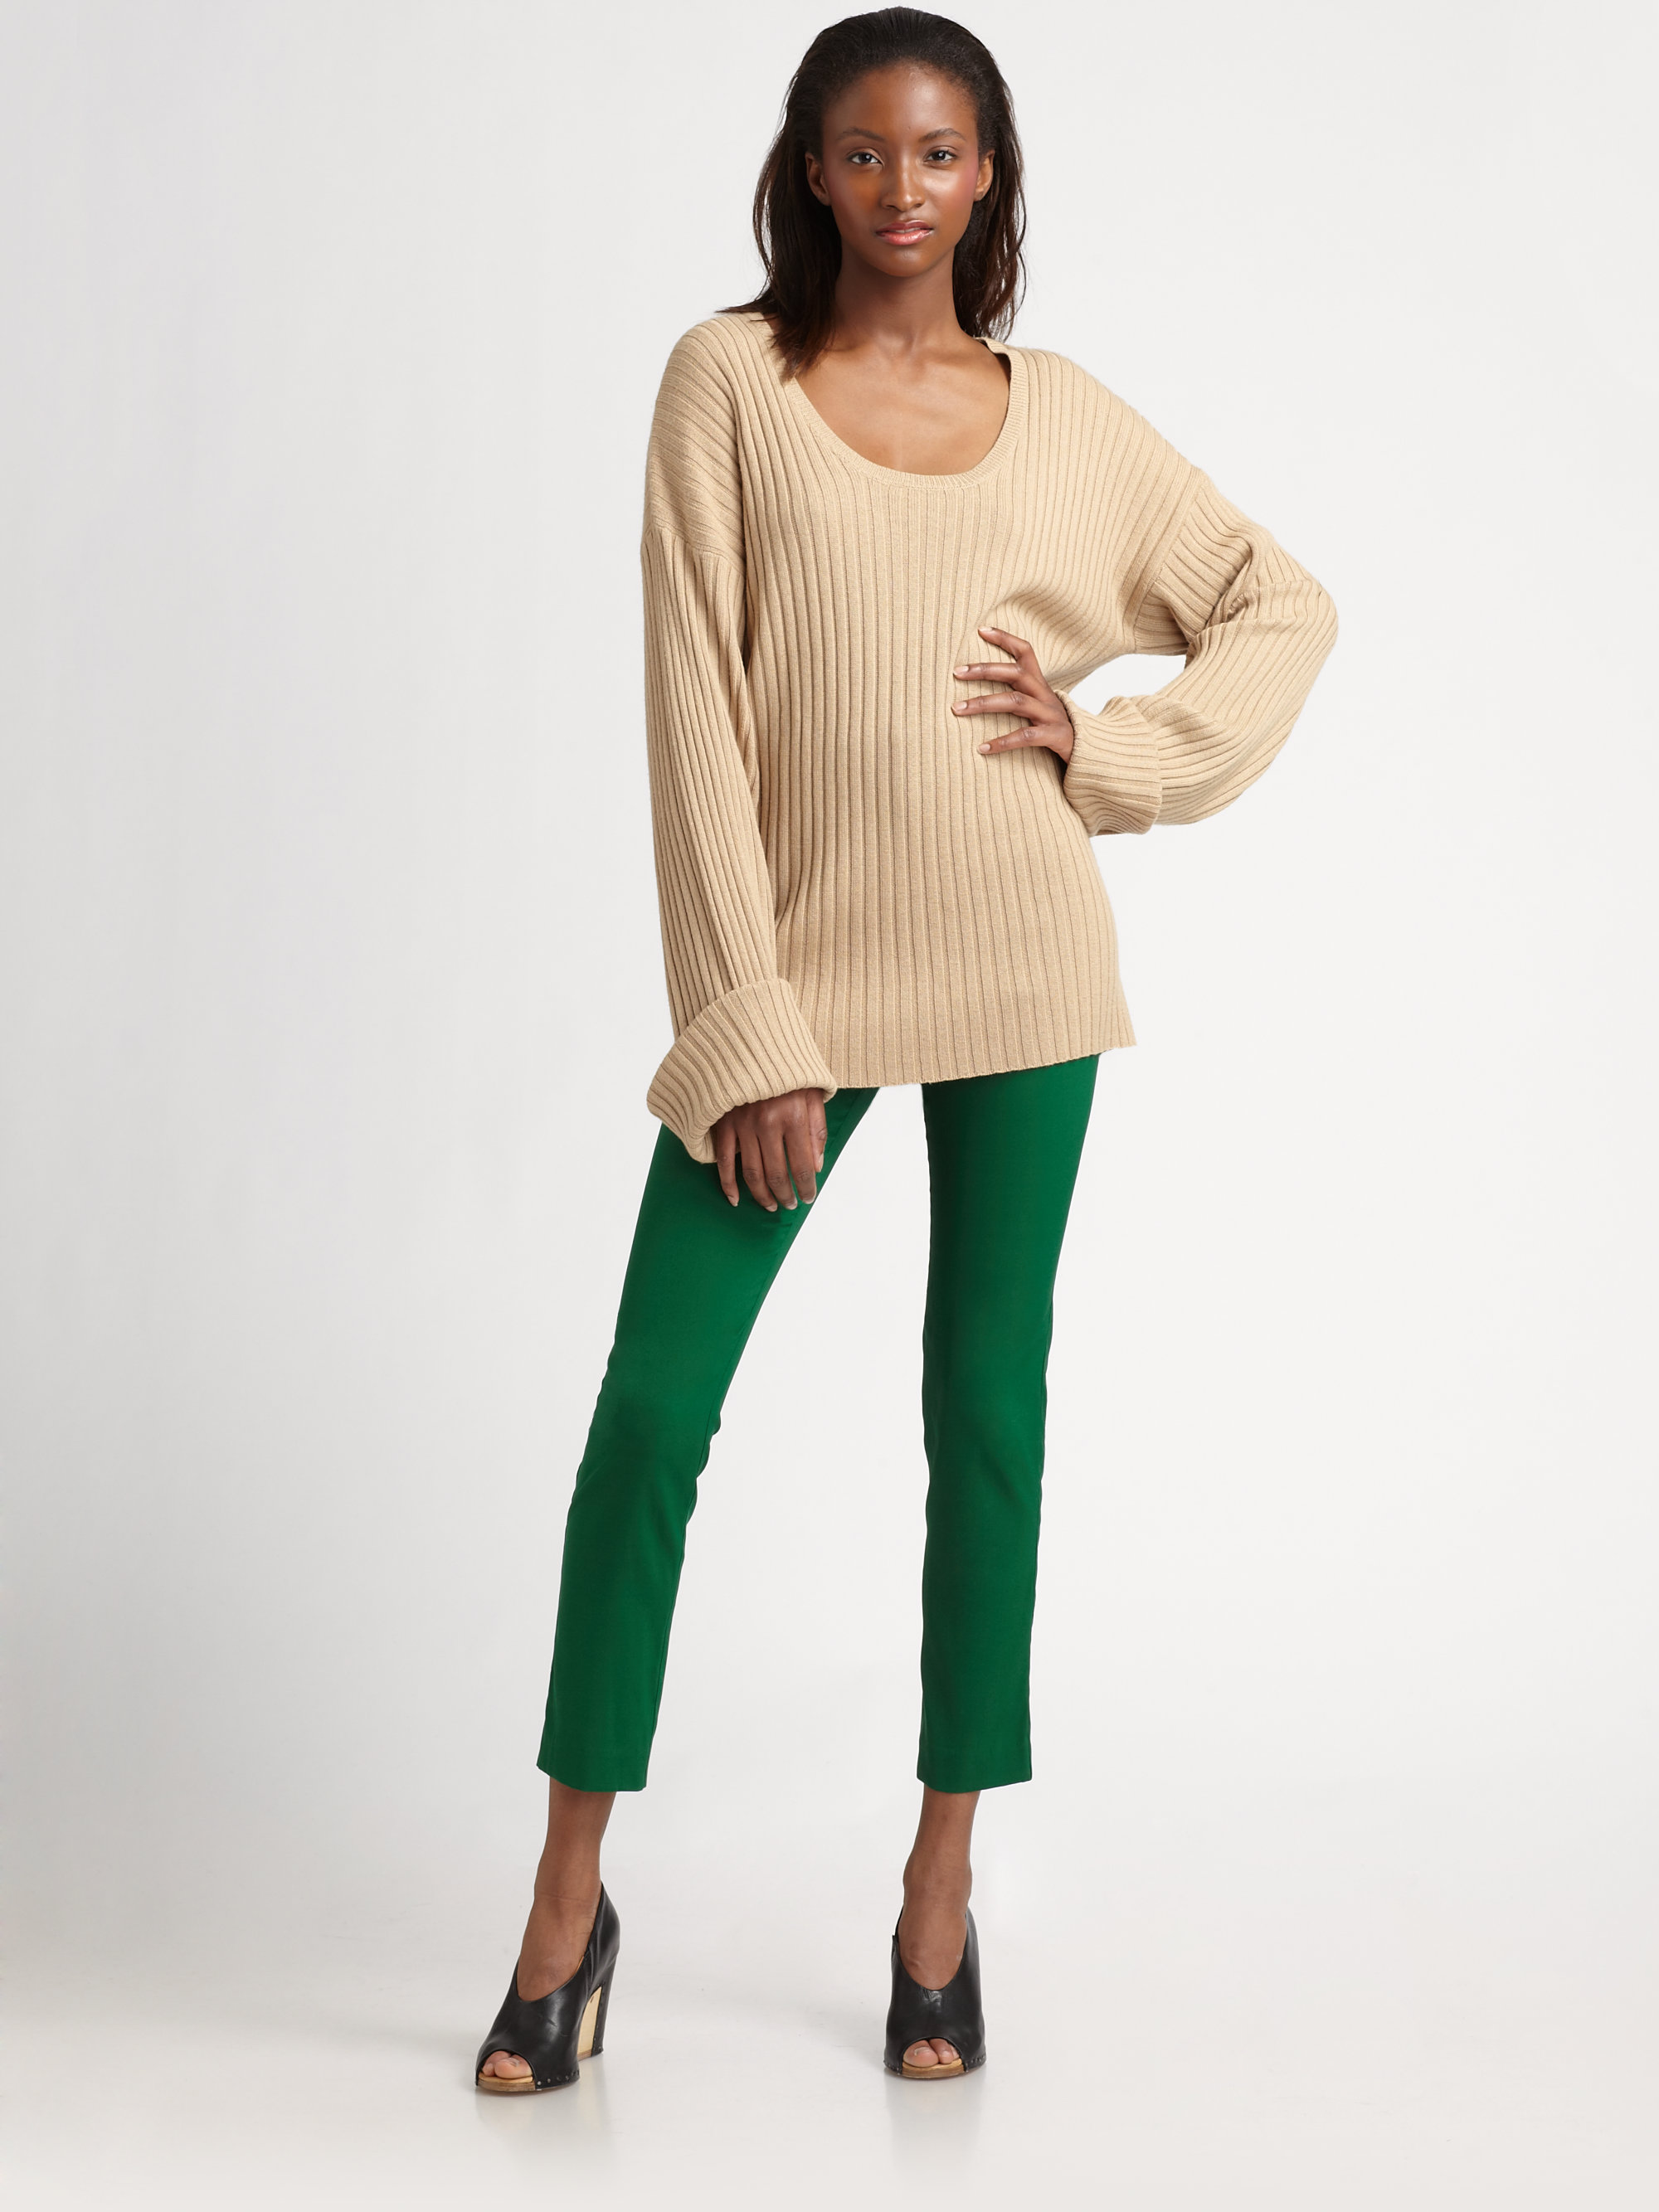 Jeffrey monteiro Oversized Ribbed Sweater in Natural | Lyst